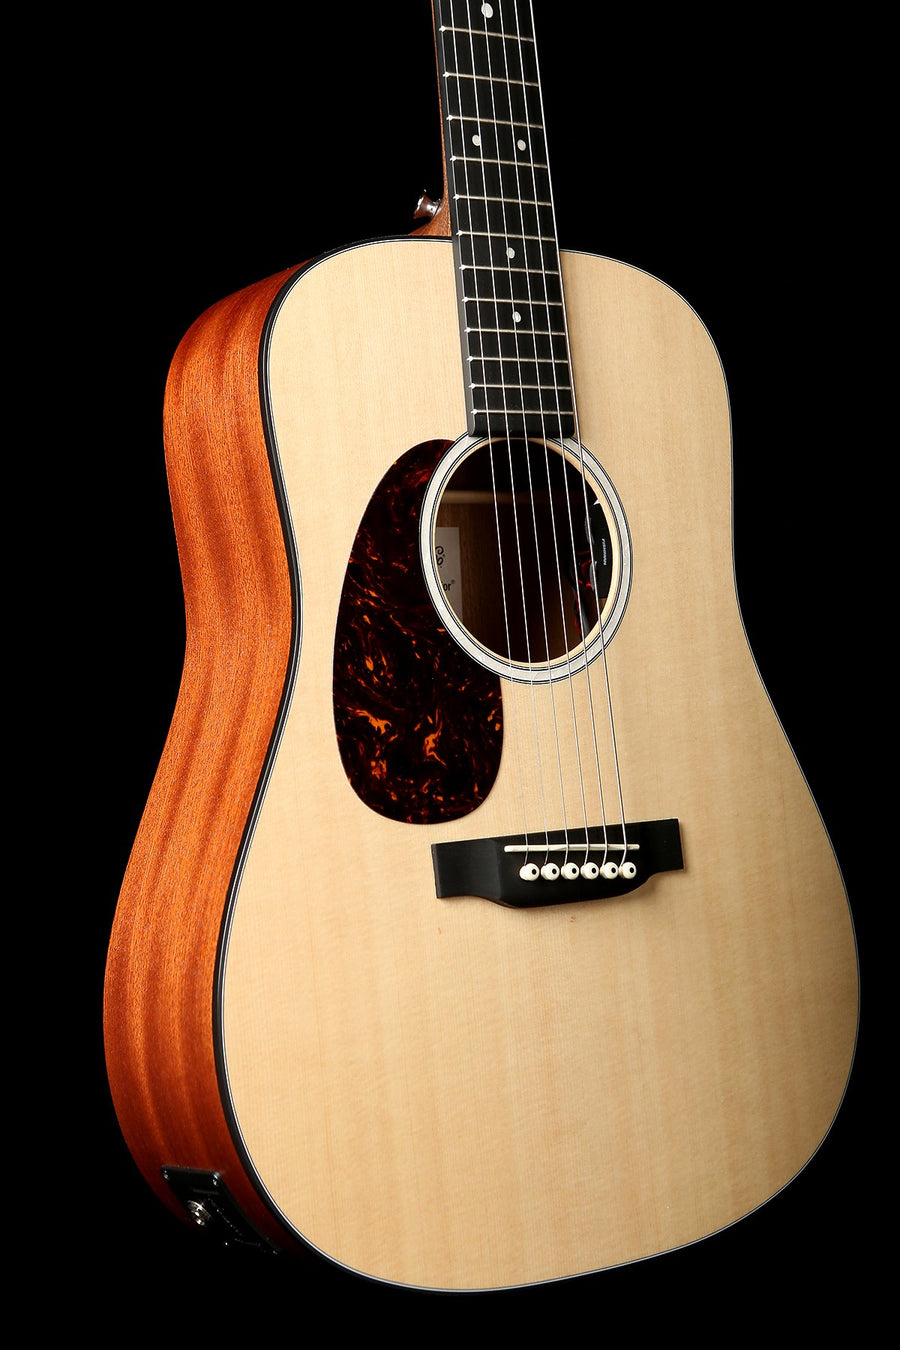 Martin DJR10EL Left-Handed Dreadnought Junior Acoustic Guitar